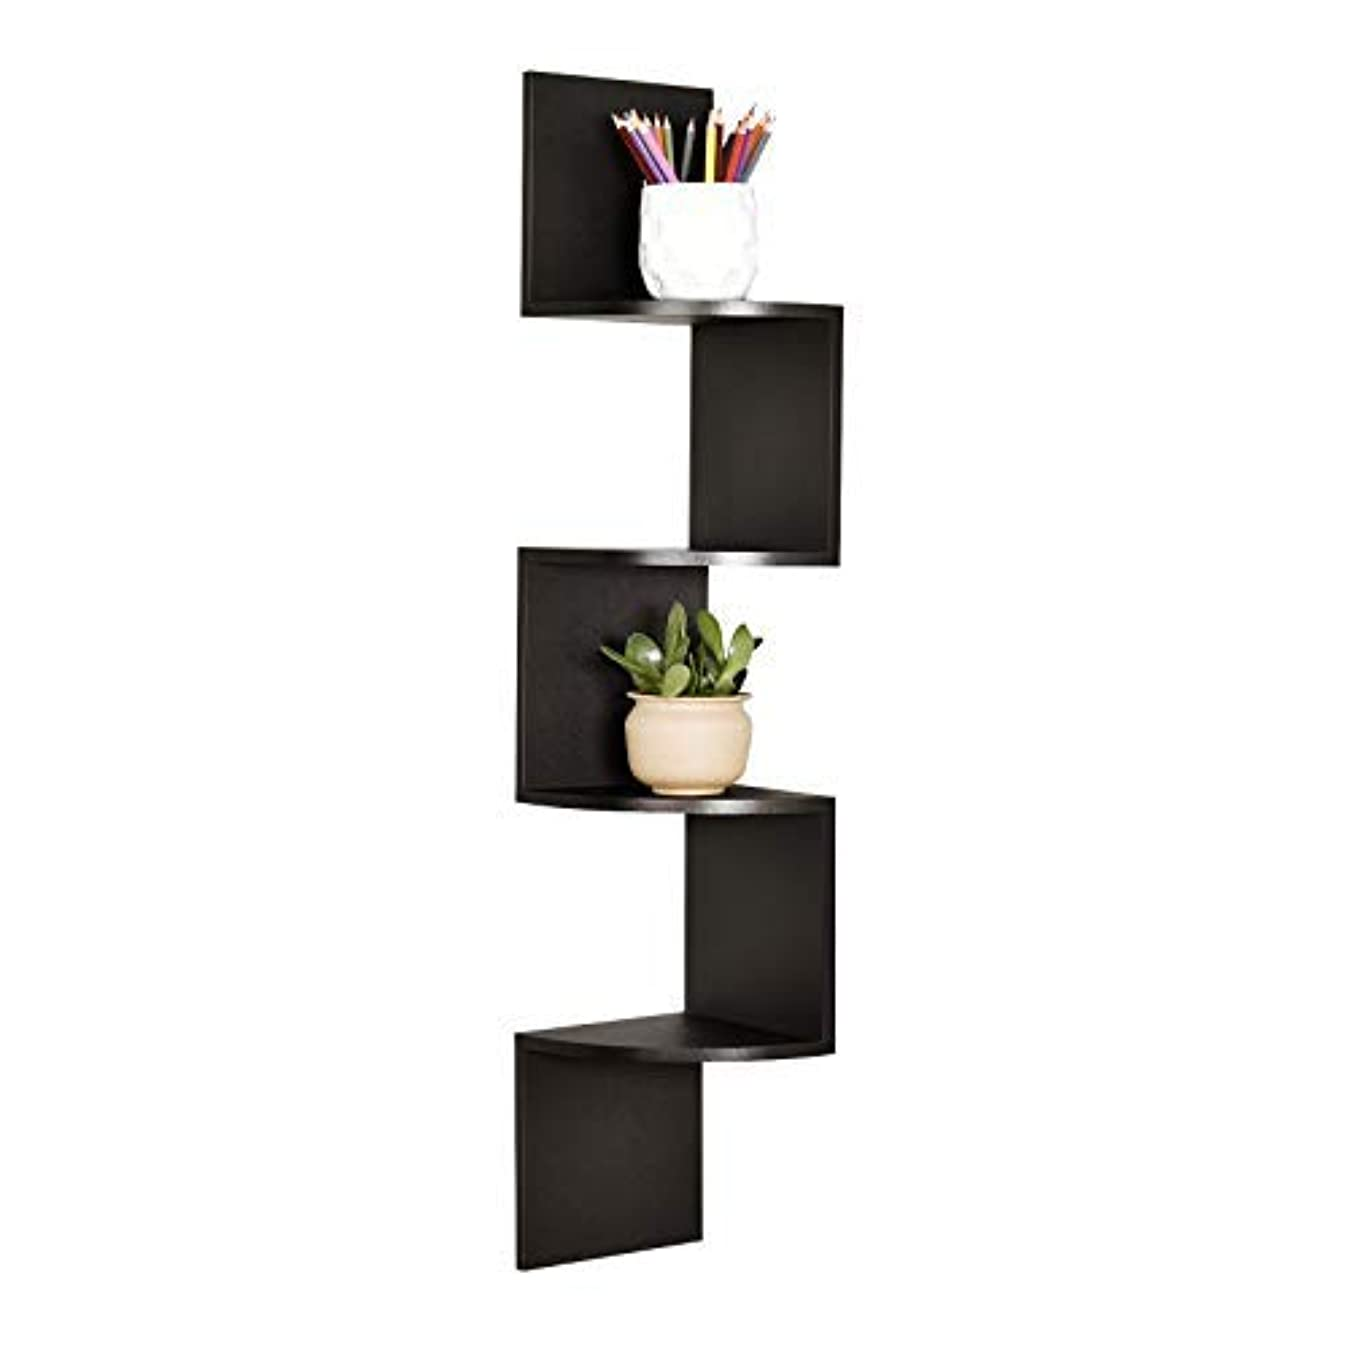 WELLAND Zig Zag 4 Tiers Black Finished Floating Shelf,Wall Mounted Corner Wall Shelf for Bed Room,Living Room,Kitchen and So on